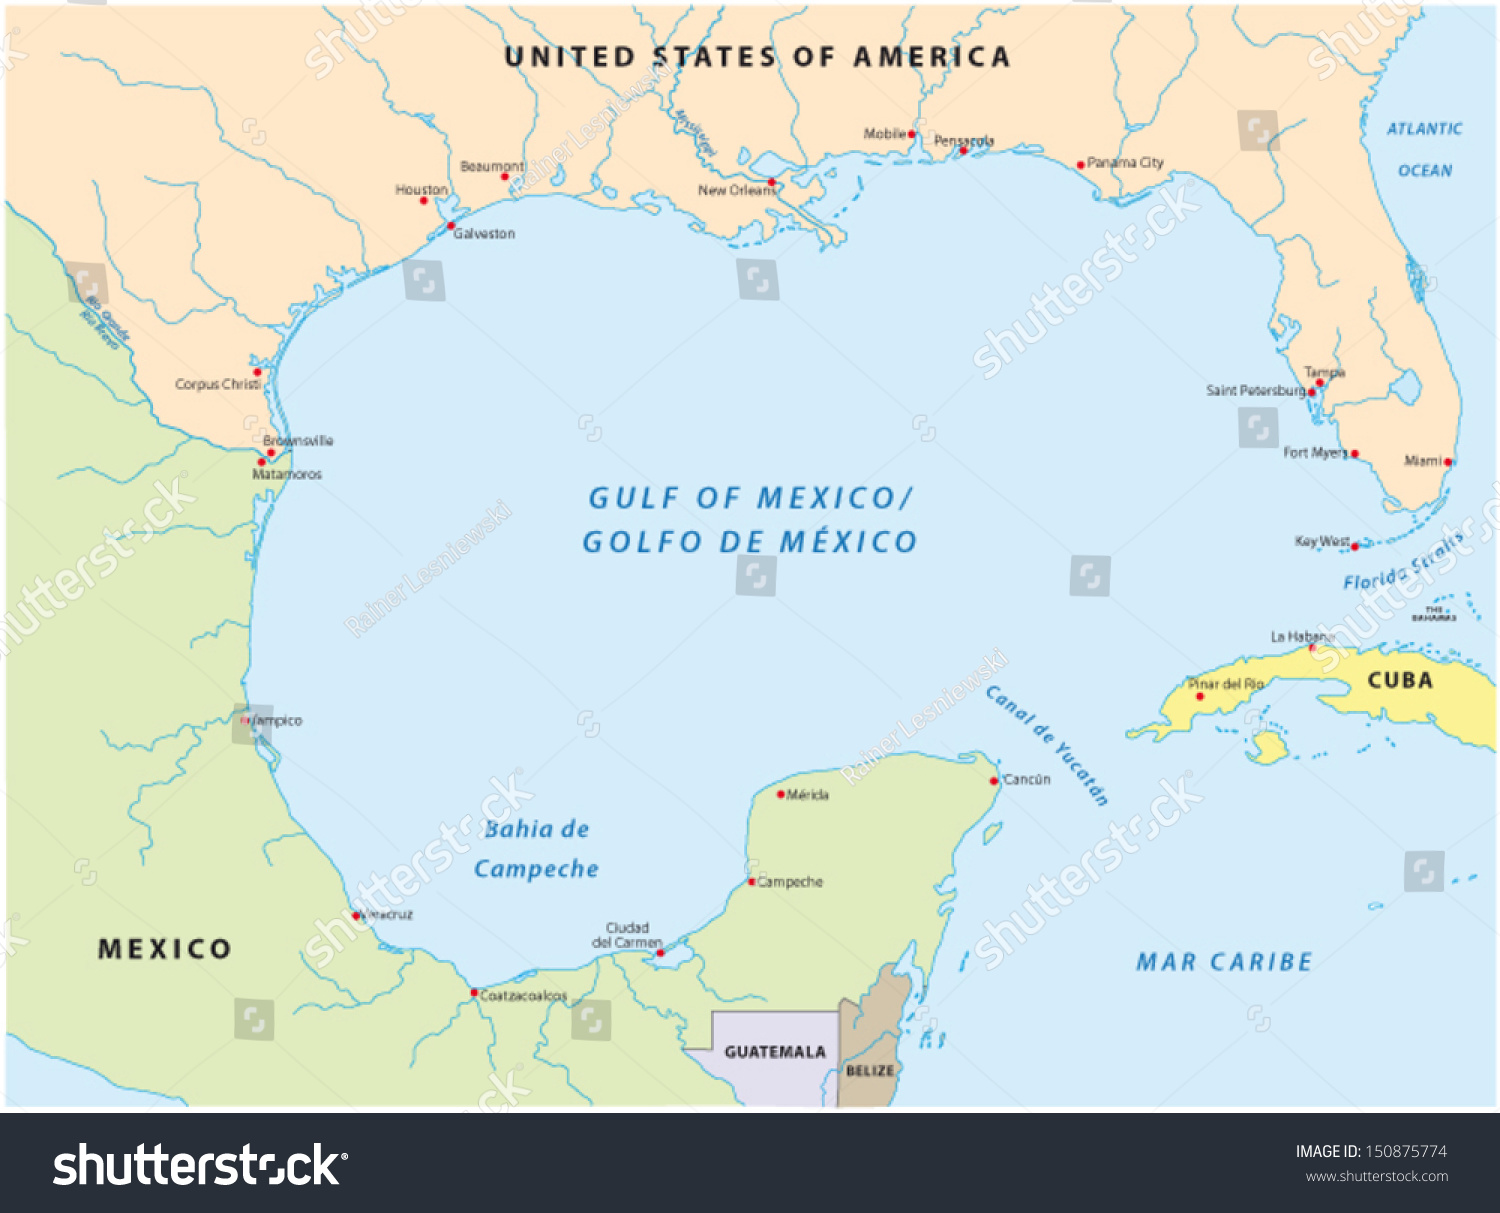 Gulf Mexico Map Stock Vector (Royalty Free) 150875774 on the rocky mountains map, gulf of mexico ocean depth map, the country of mexico map, gulf of mexico and united states map, chesapeake bay map, gulf of mexico cuba map, gulf of campeche mexico map, gulf of mexico coastal map, the atlantic coastal plain map, gulf mexico water depth map, the norway map, the gulf of japan, the indonesia map, the swamp map, gulf of mexico floor map, pacific ocean map, the valley of mexico map, the 50 states map, gulf of mexico on map, the city of mexico map,